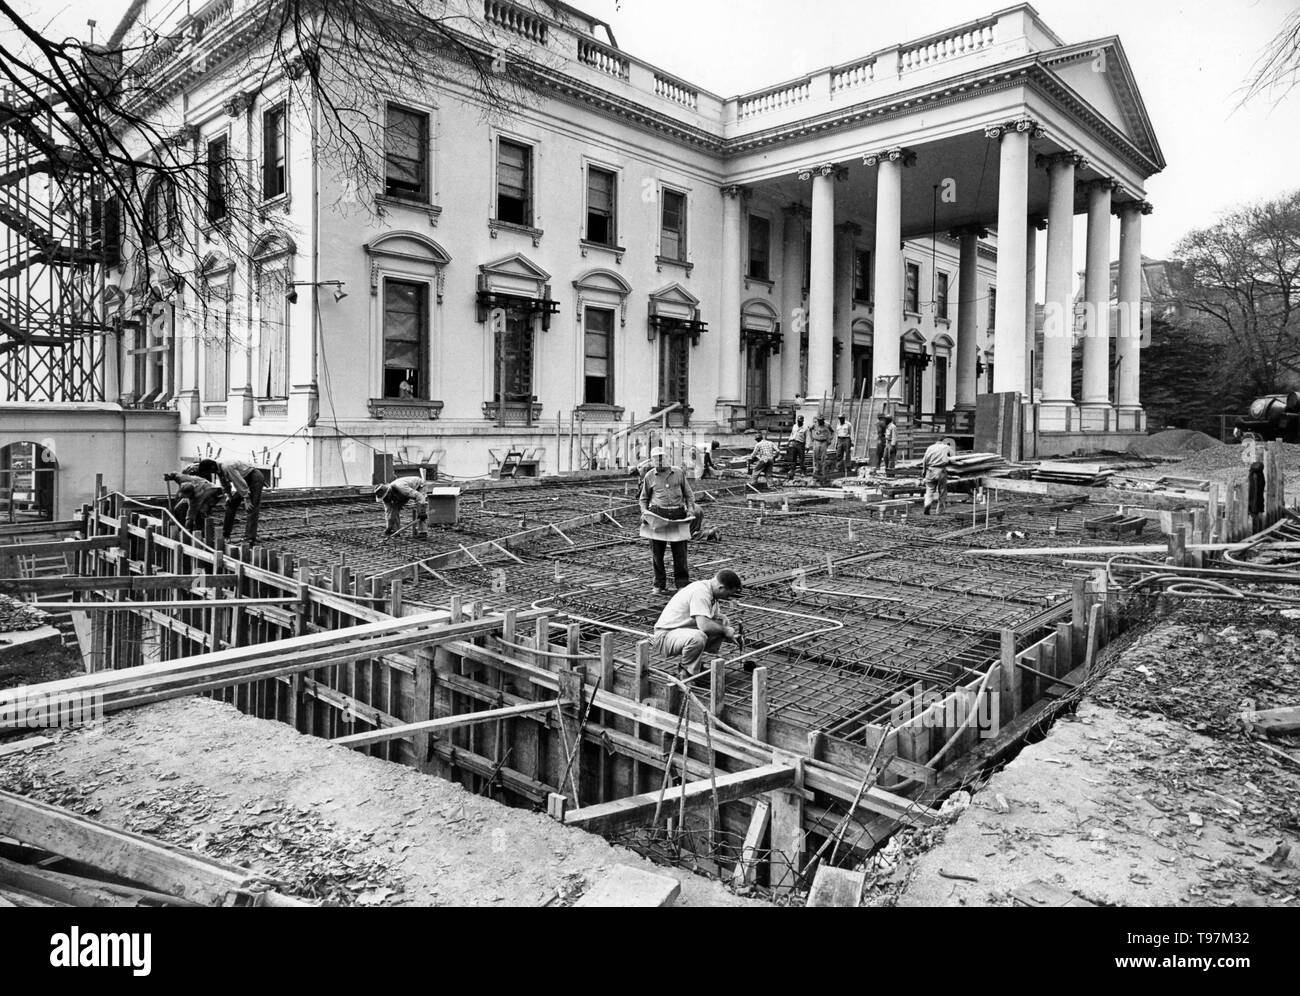 View of the Northeast Corner of the White House during the Renovation, 11/06/1950 - Stock Image